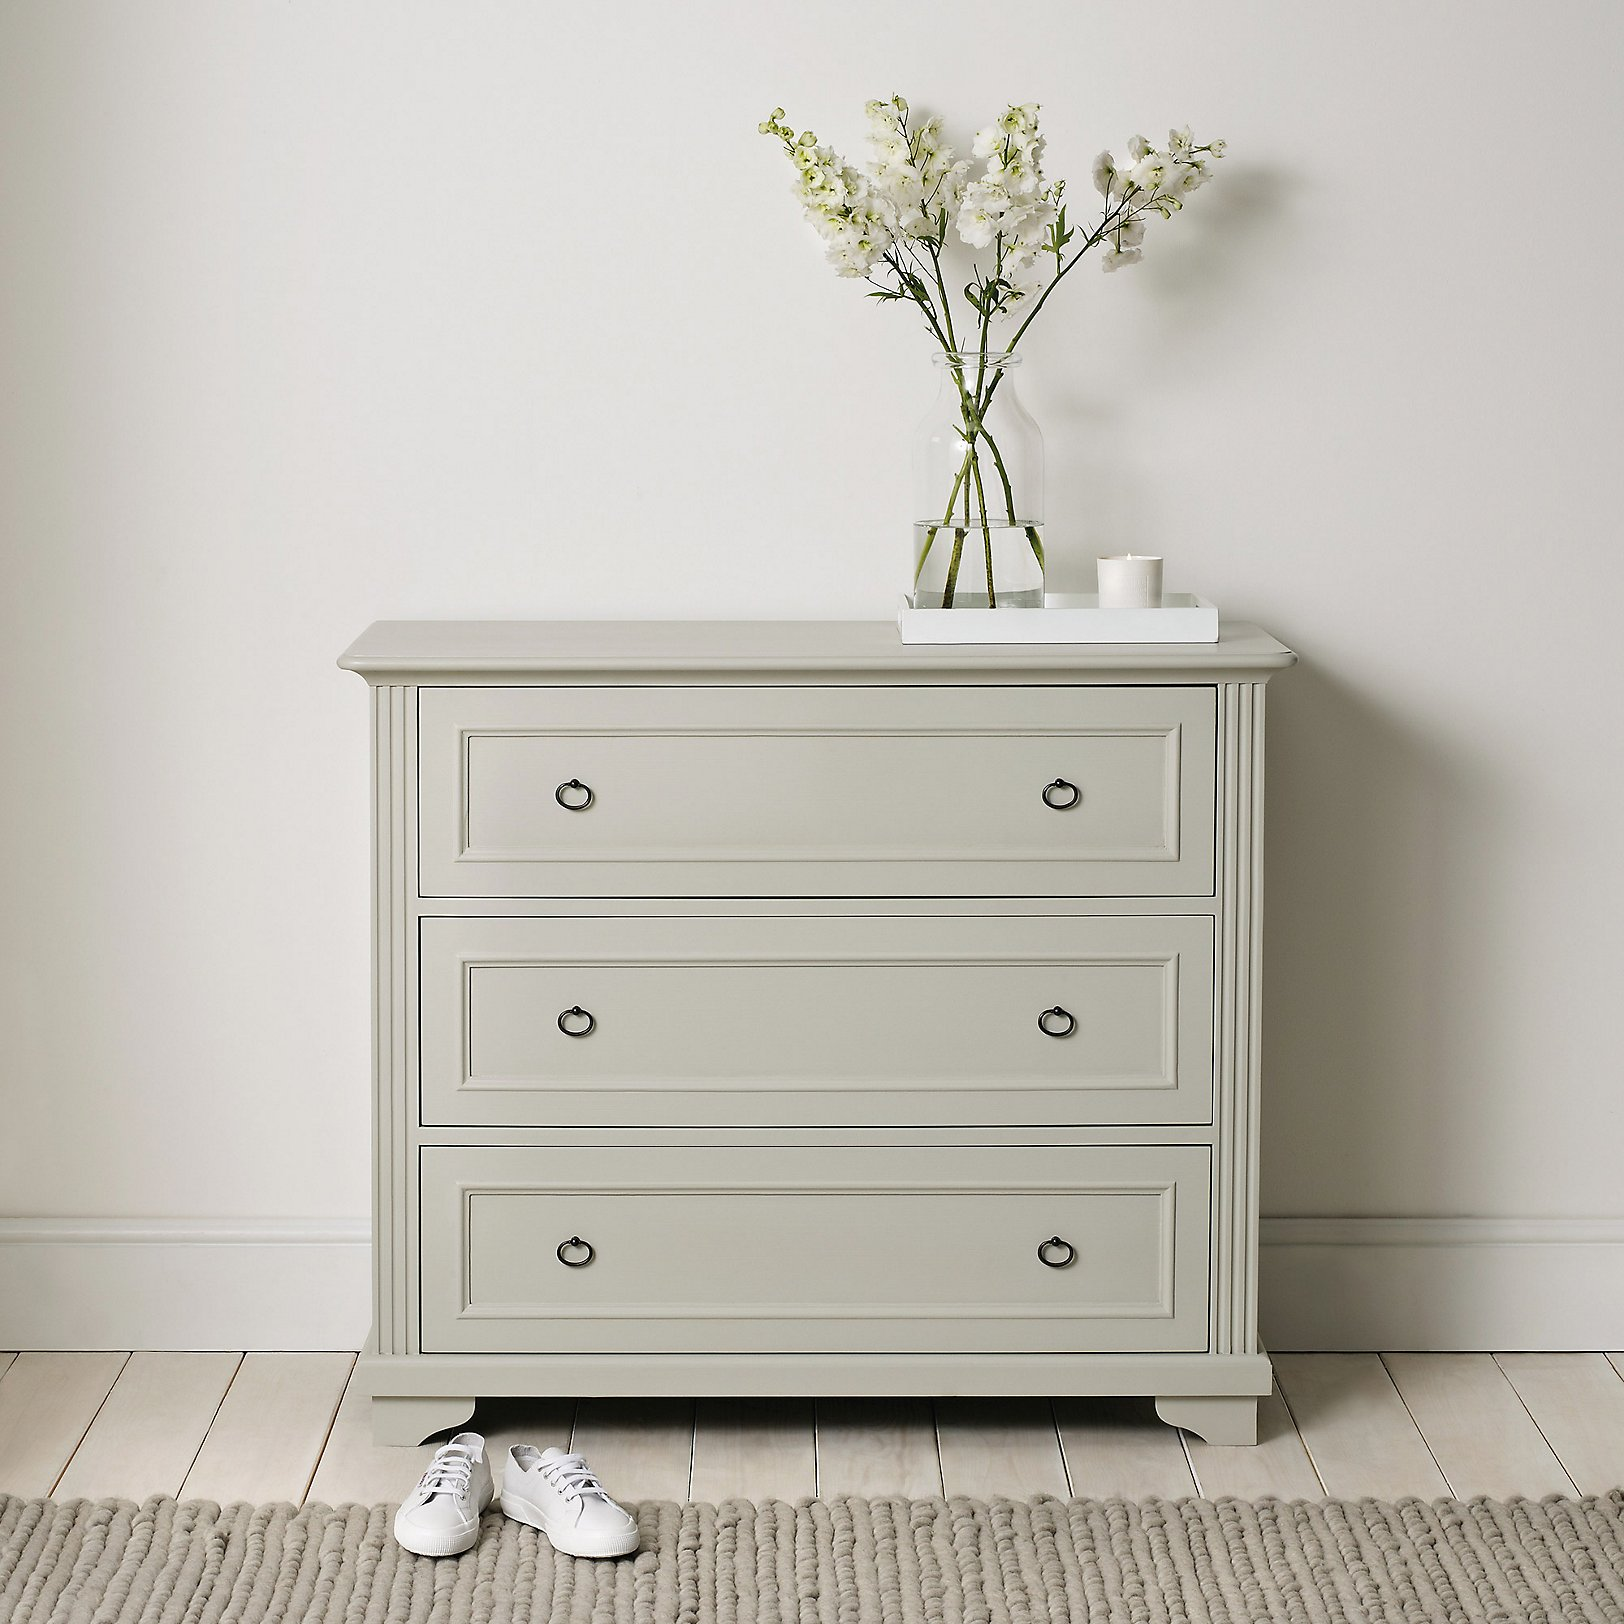 Provencal Bedroom Furniture Bedroom Furniture Furniture Home The White Company Uk